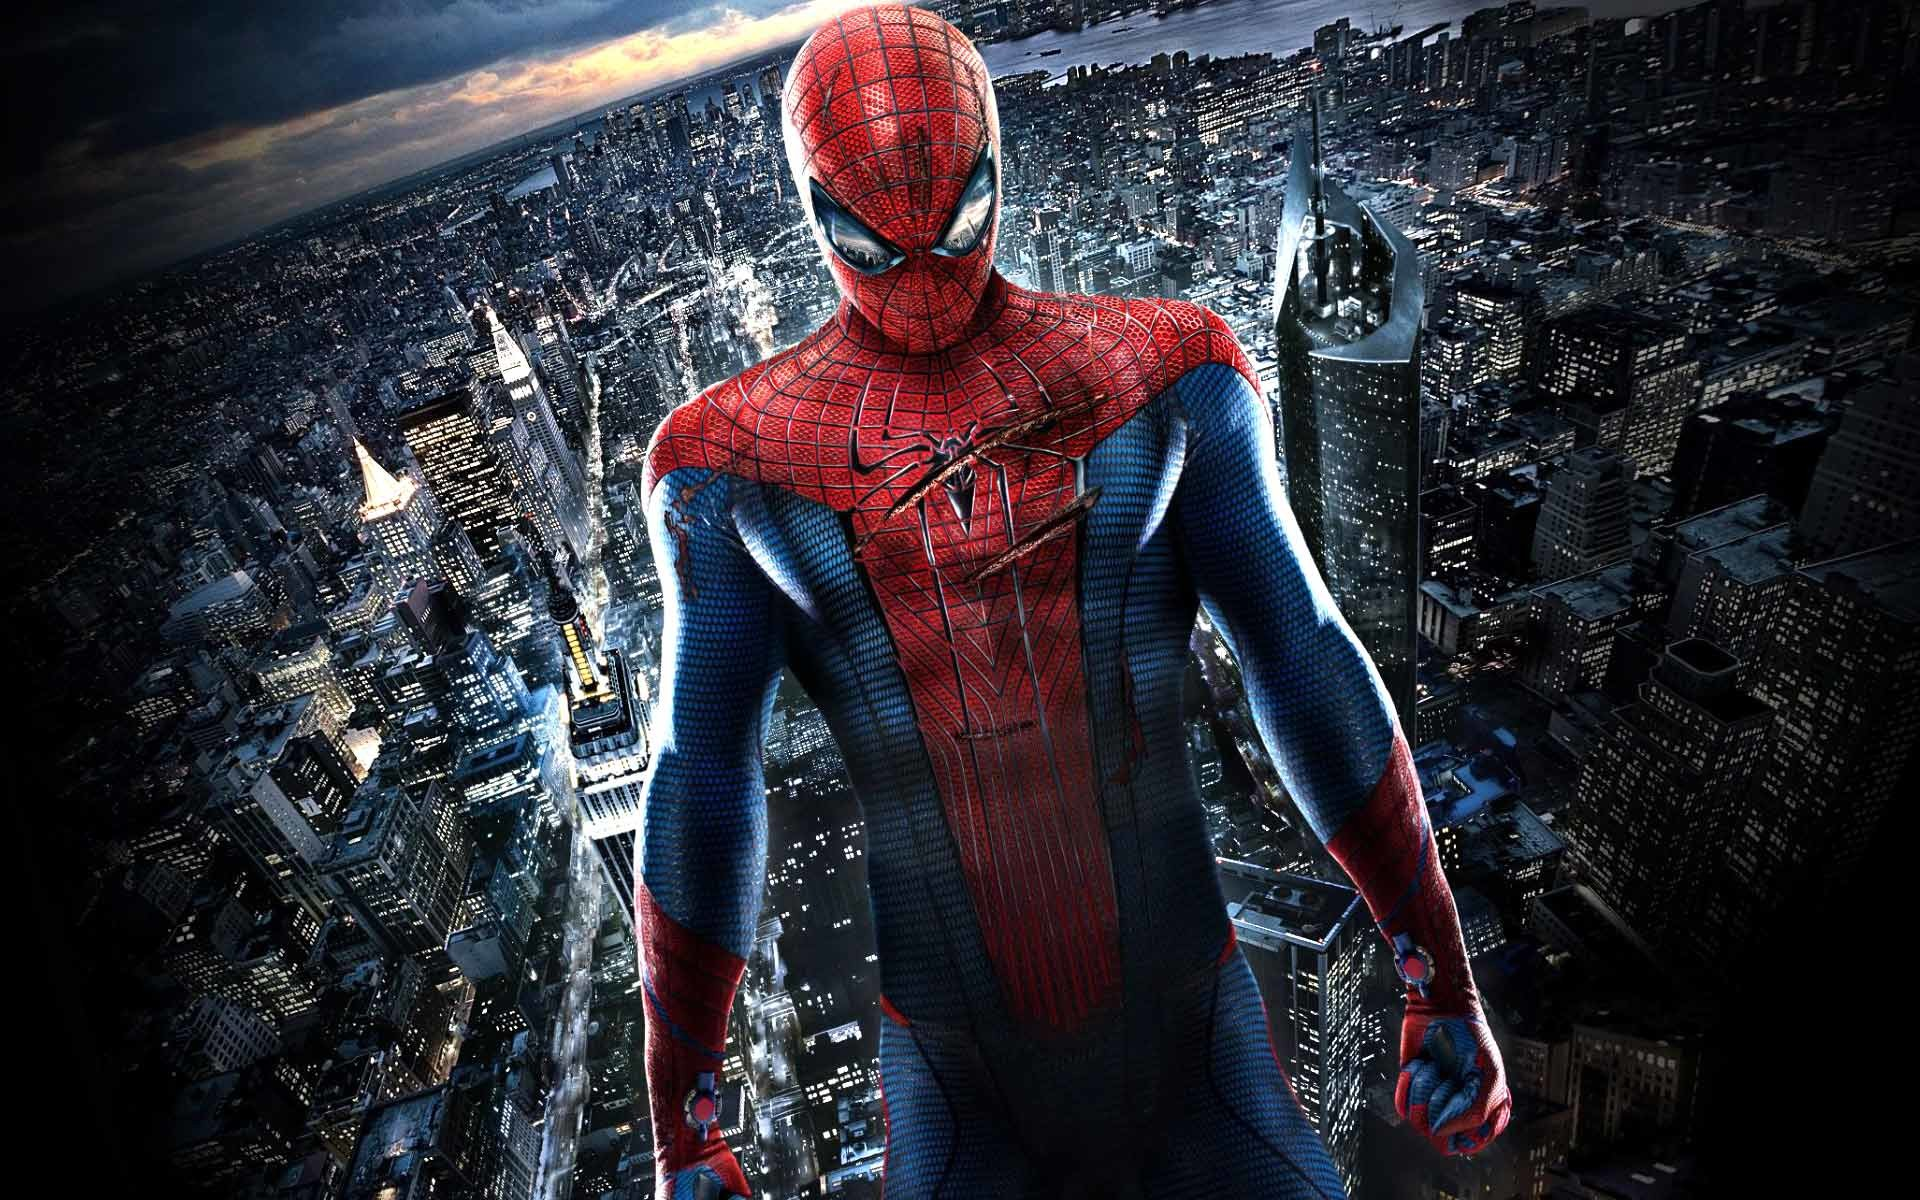 Spider man hd wallpapers 1080p 73 images 1920x1080 the amazing spiderman hd wallpapers backgrounds wallpaper the amazing spider man wallpapers hd wallpapers voltagebd Gallery